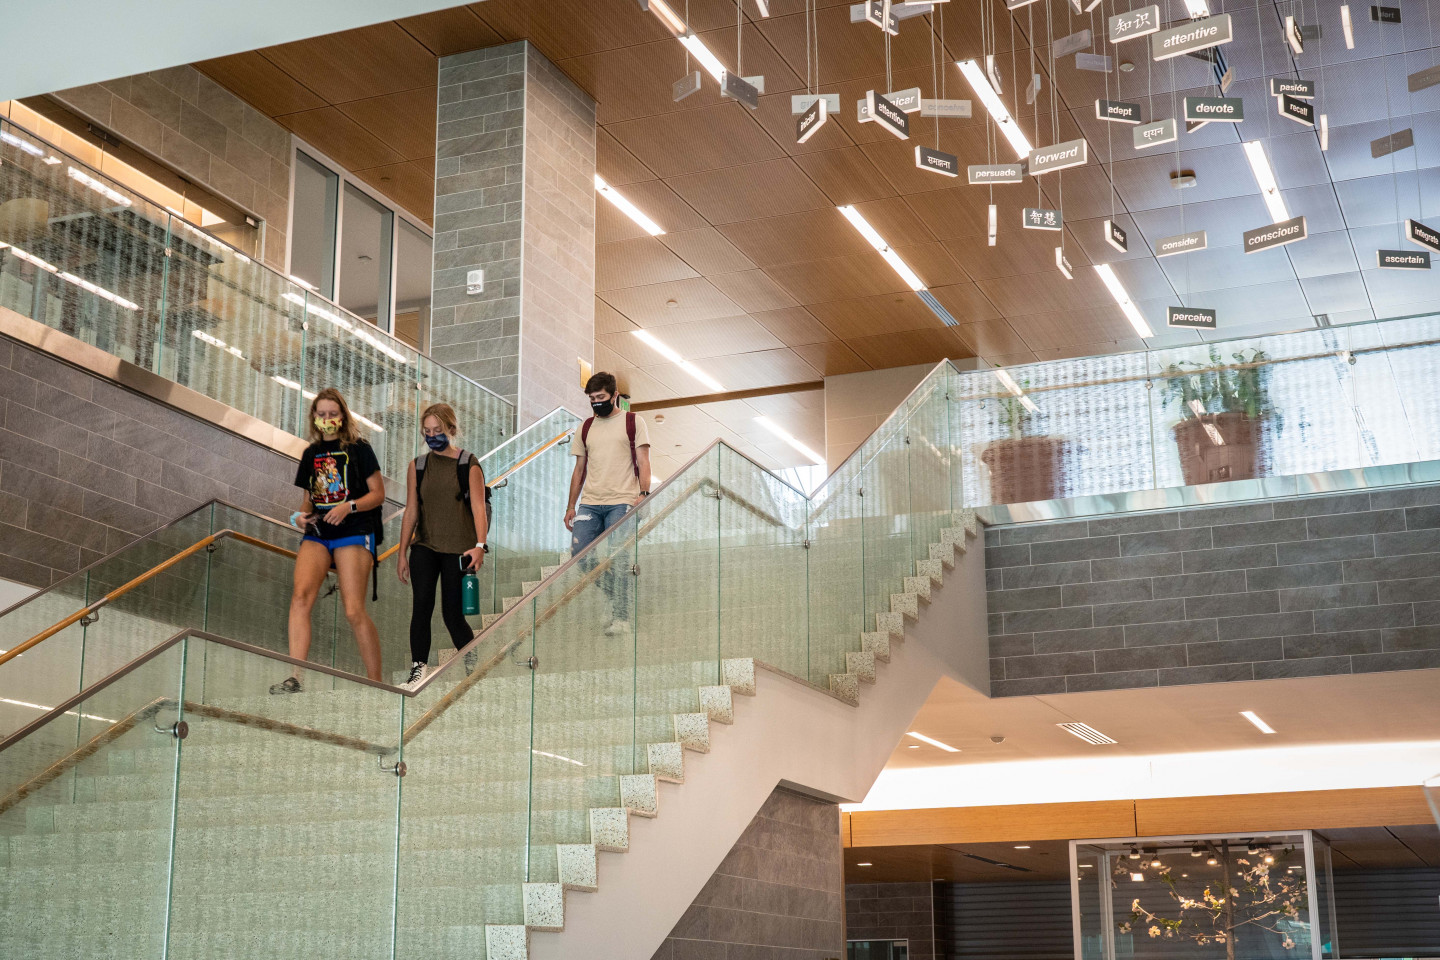 Photo of students walking down stairs.